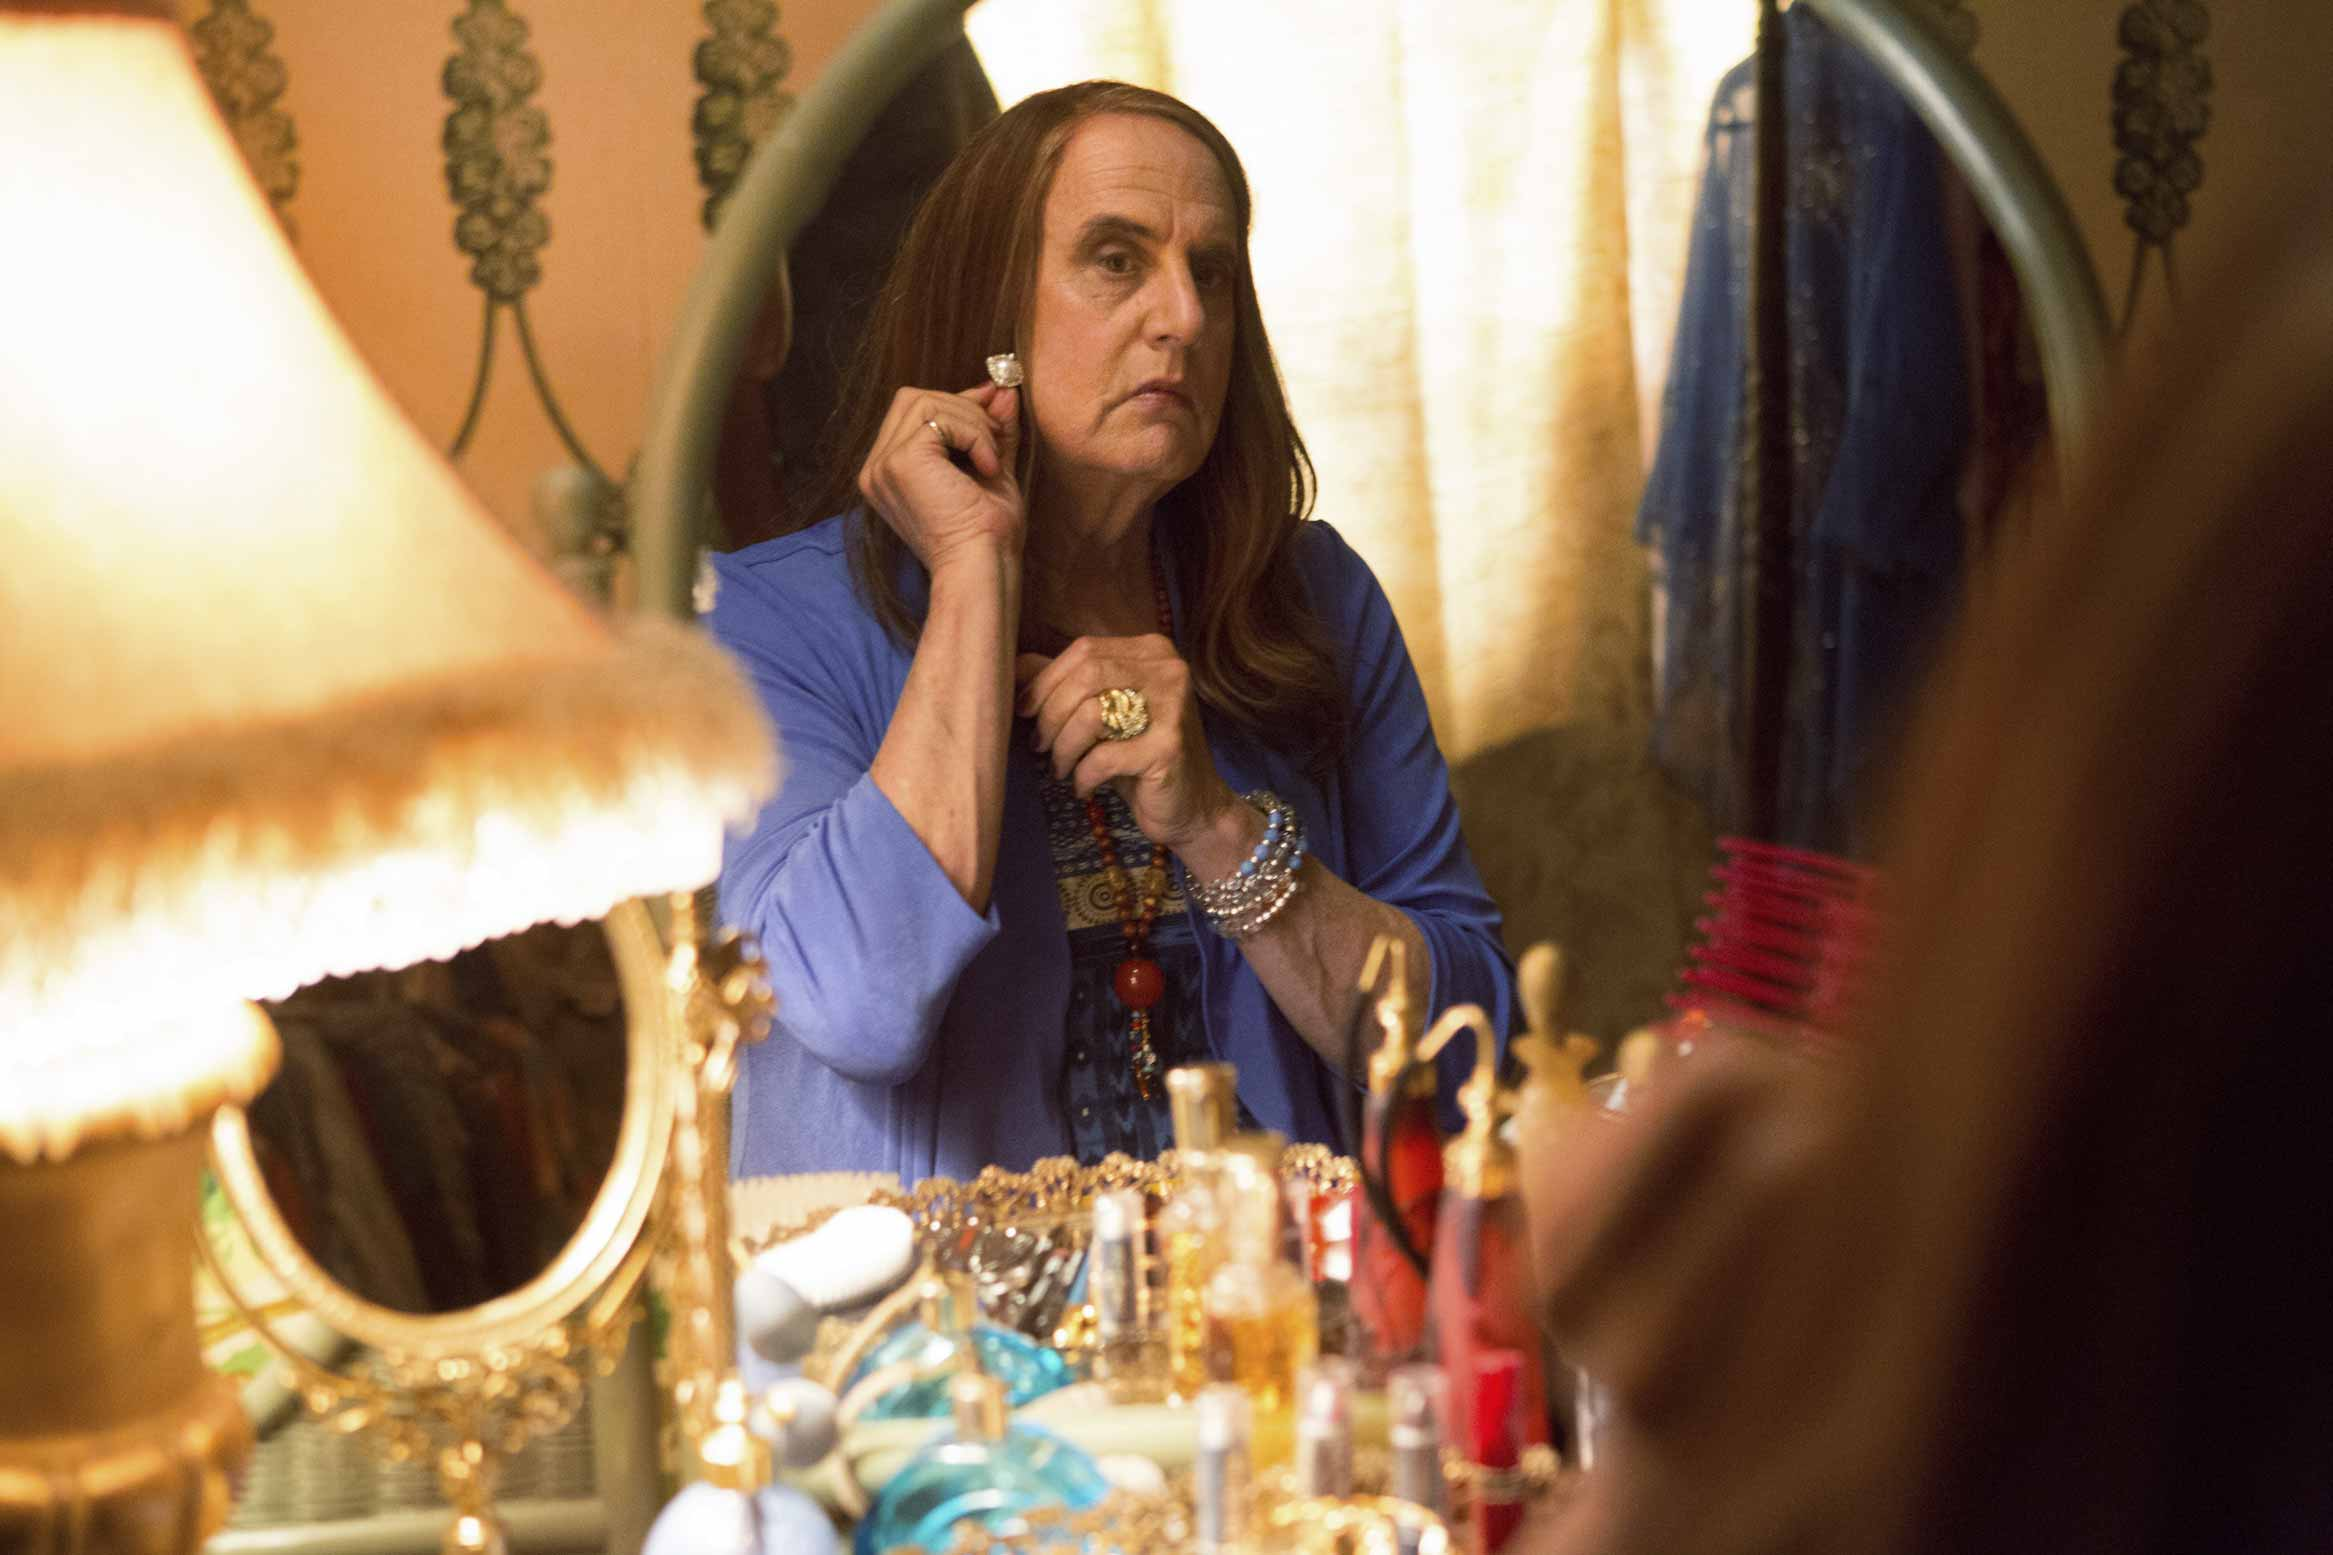 Toplay Pfefferman, Tambor says he had to learn how to be a woman—just like his character